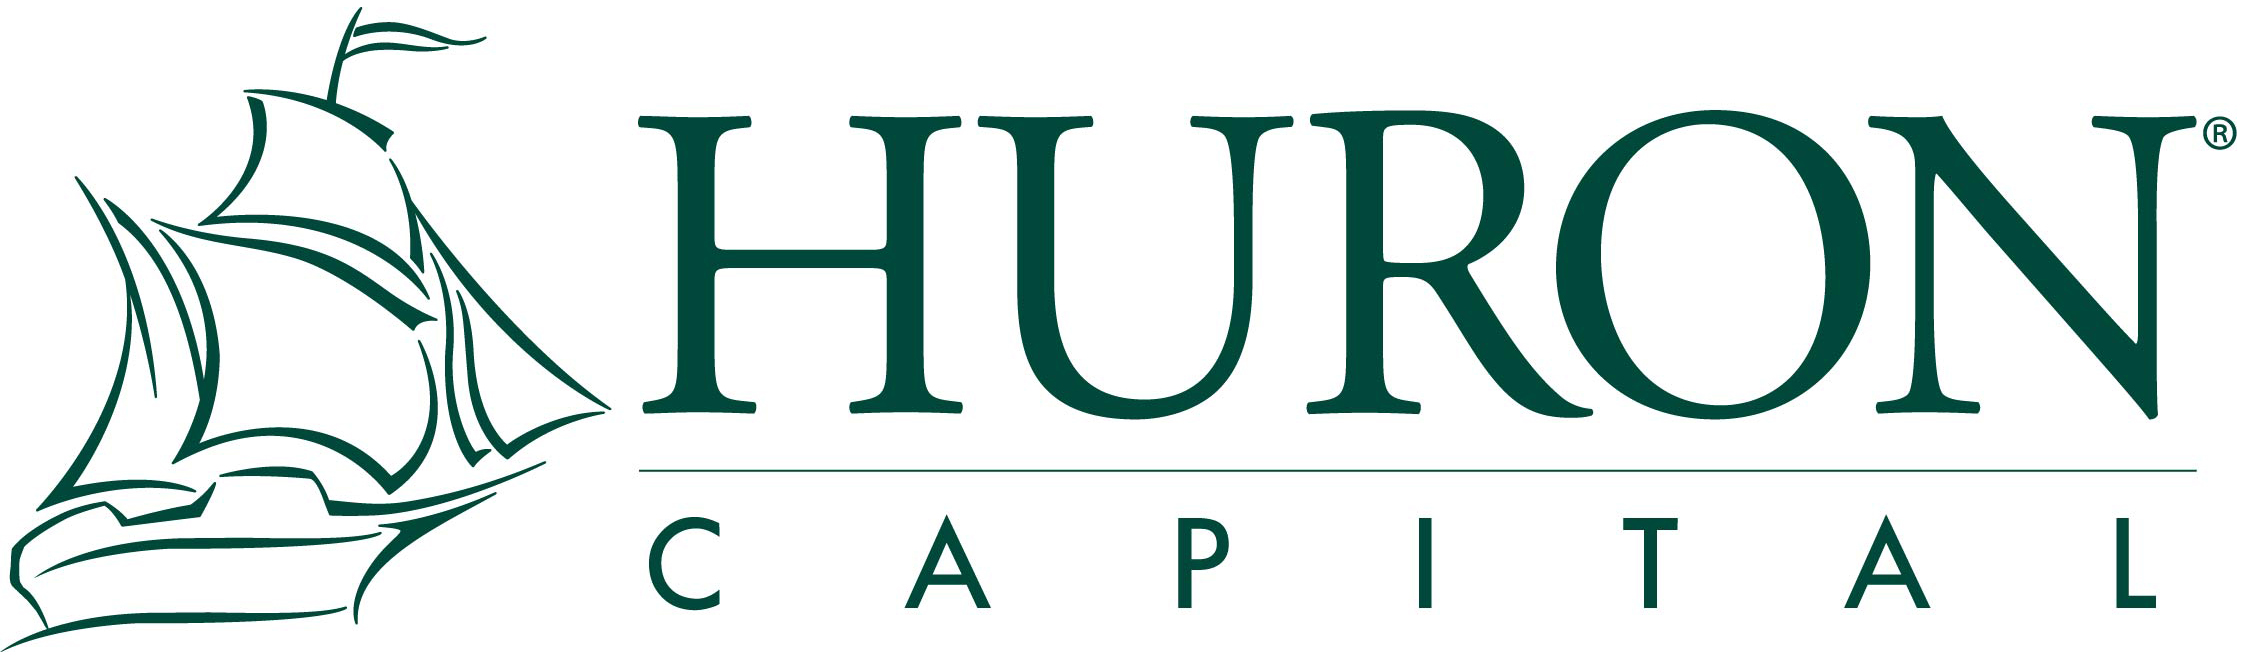 Huron Capital